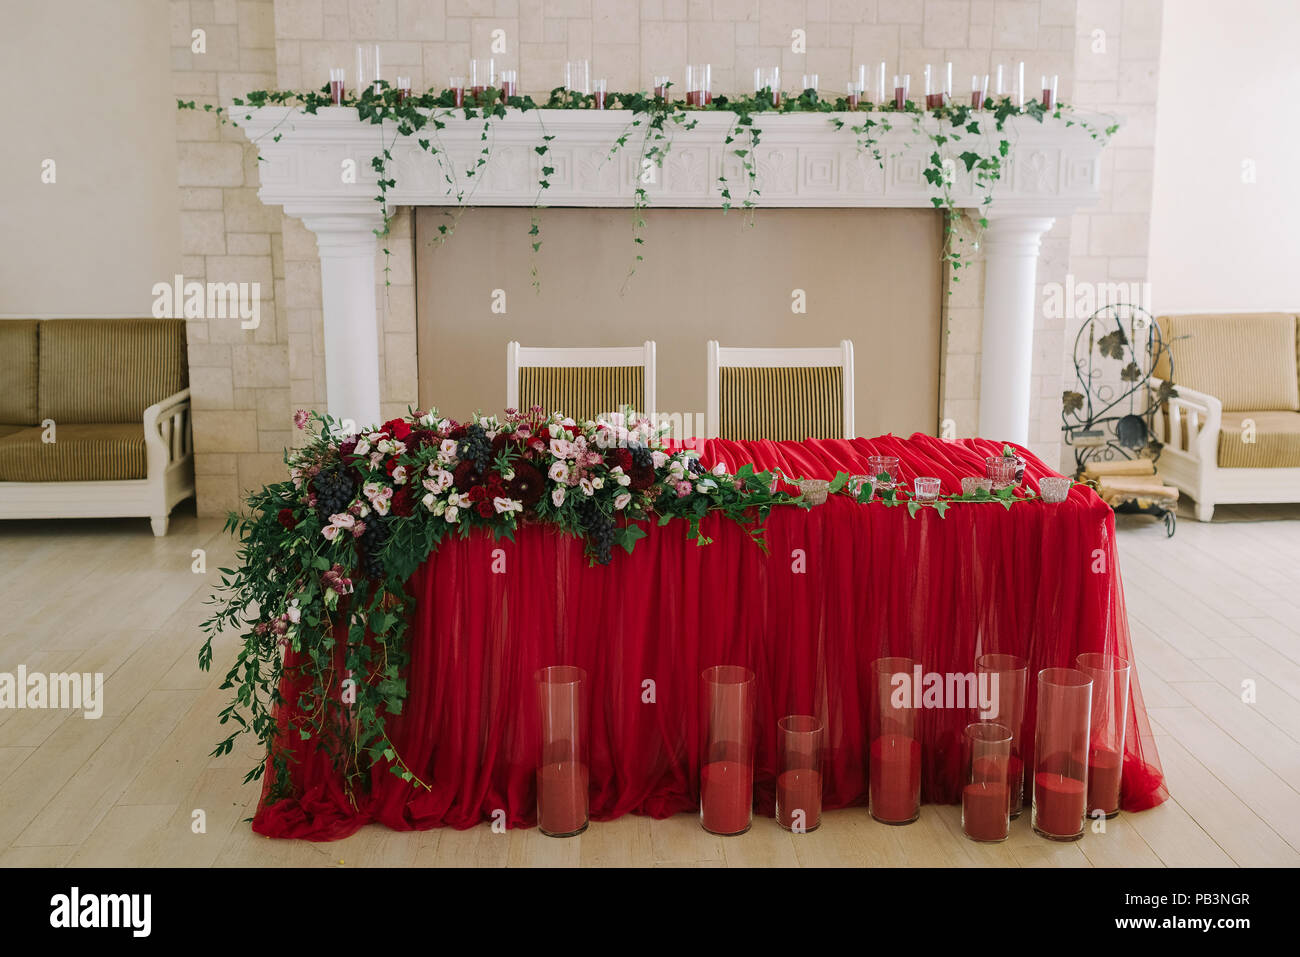 The bright red cloth on a wedding table. Magnificent wedding presidium - Stock Image